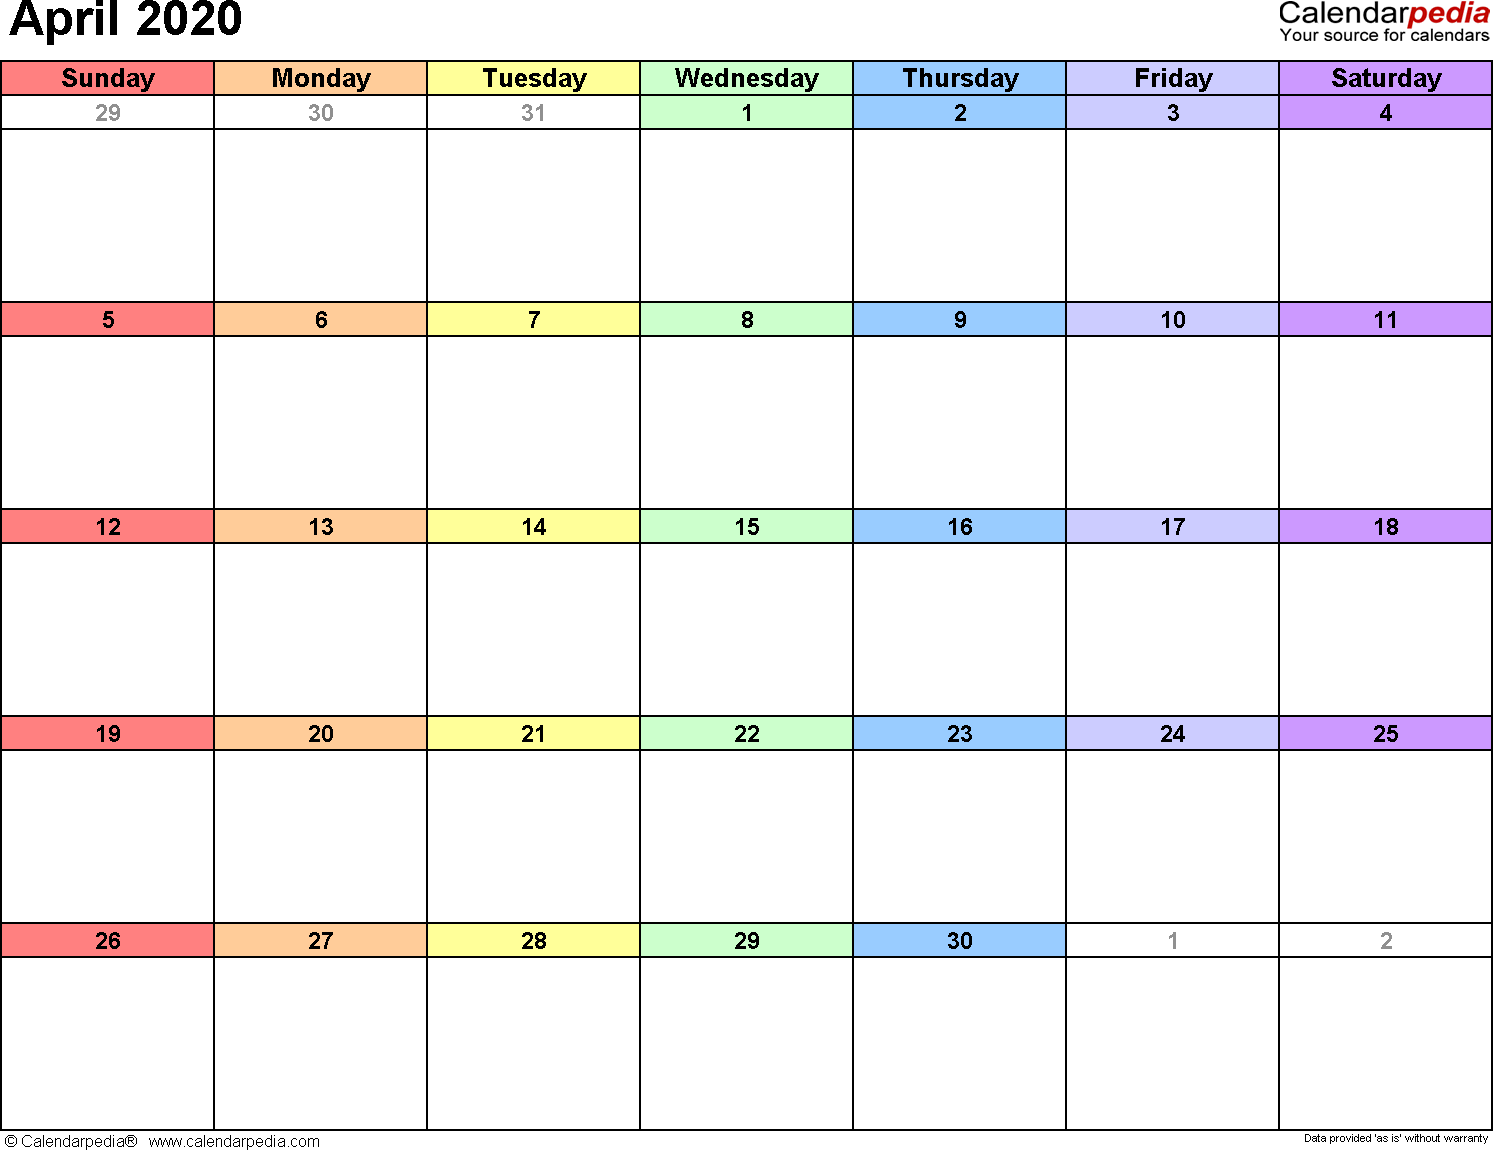 Calendar Template April 2020 April 2020 Calendars for Word, Excel & PDF